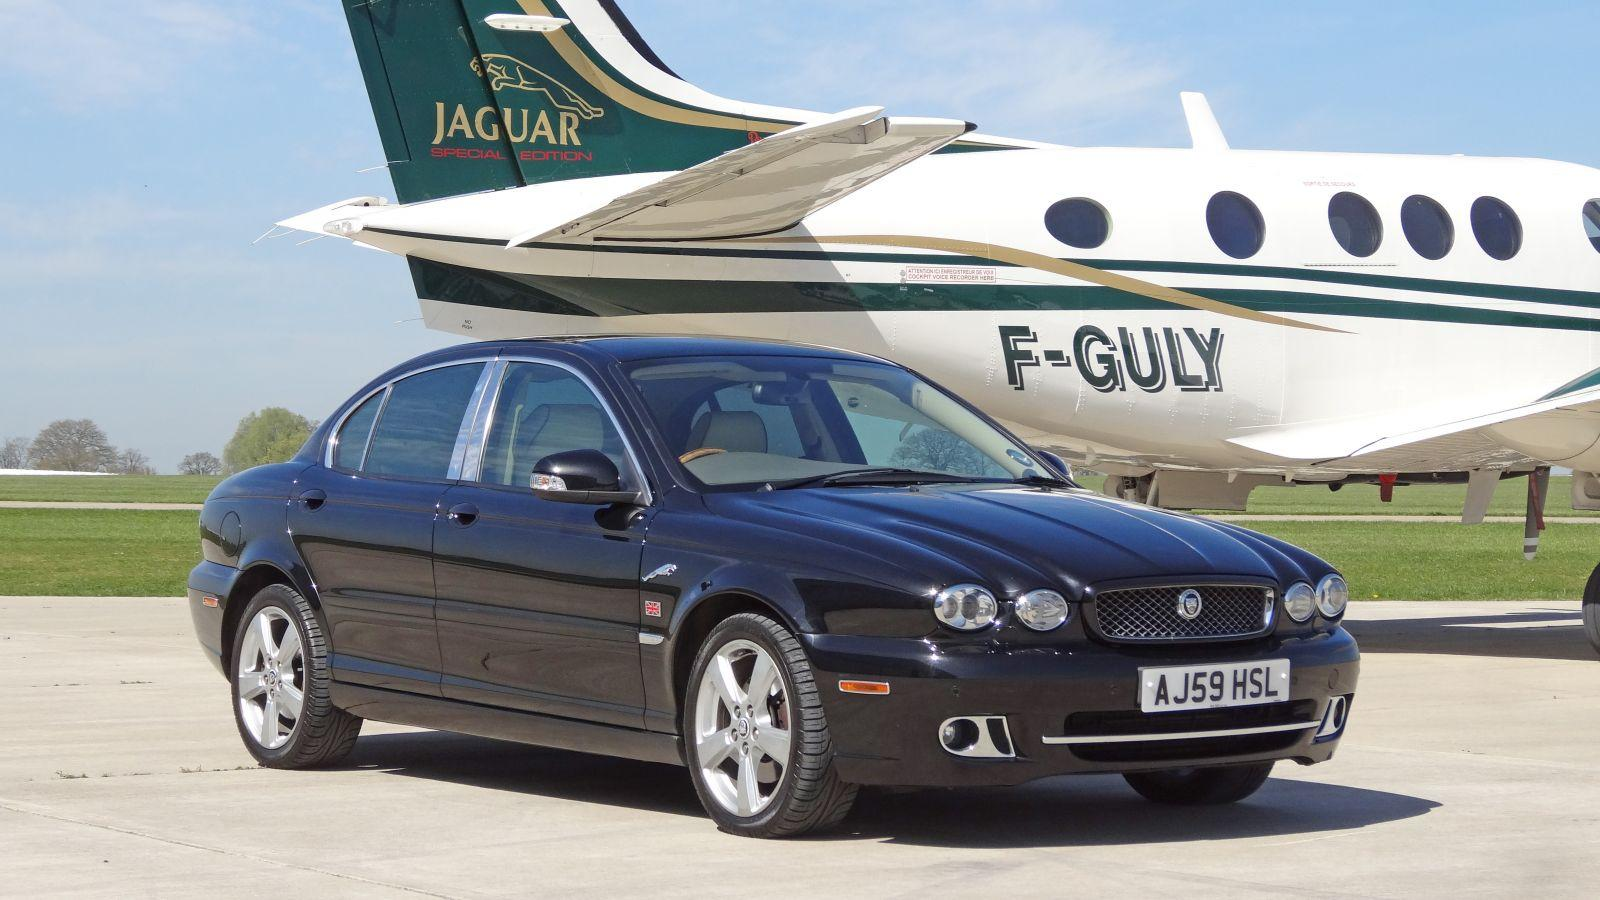 Jaguar Car and Aircarft 4